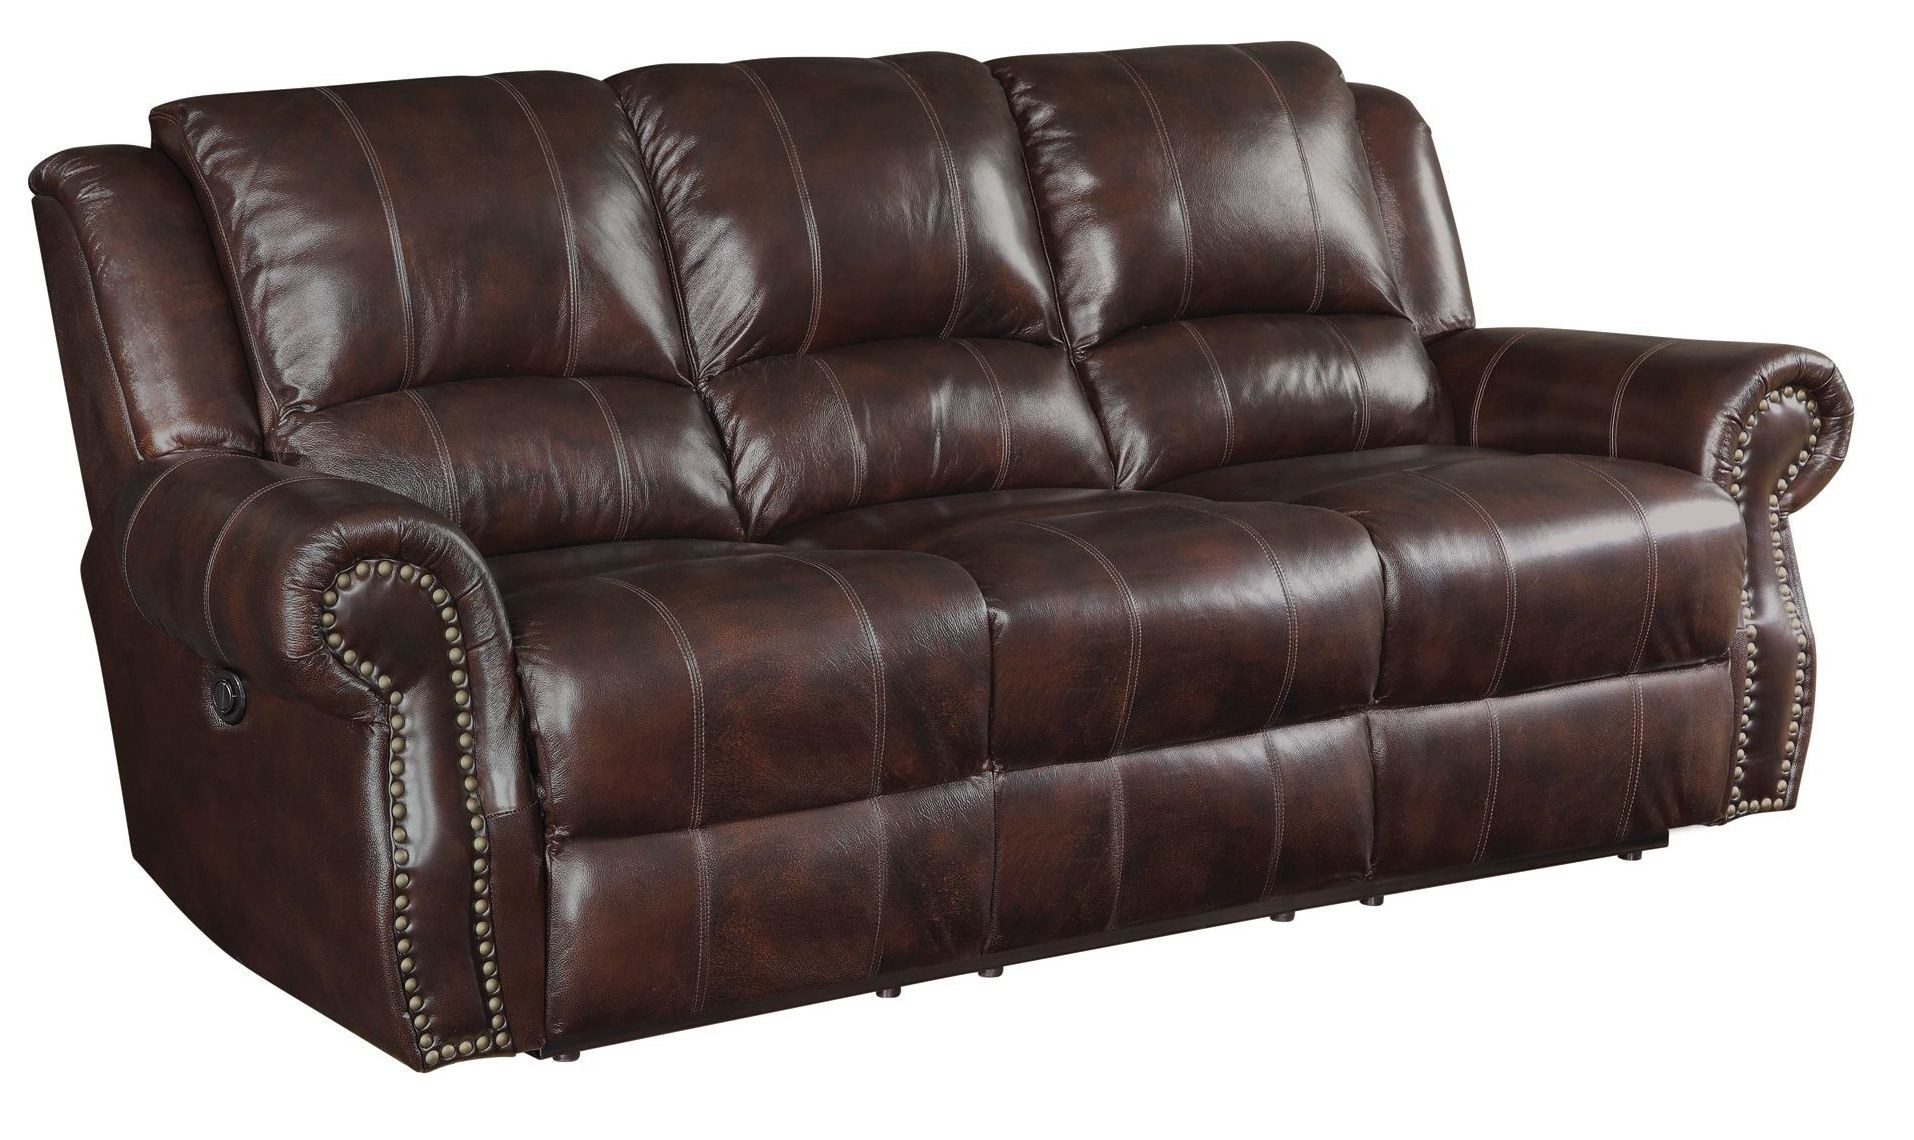 alessandro leather power motion sofa reviews sure fit middleton one piece slipcover champagne sir rawlinson reclining from coaster 650161 coleman furniture 523703